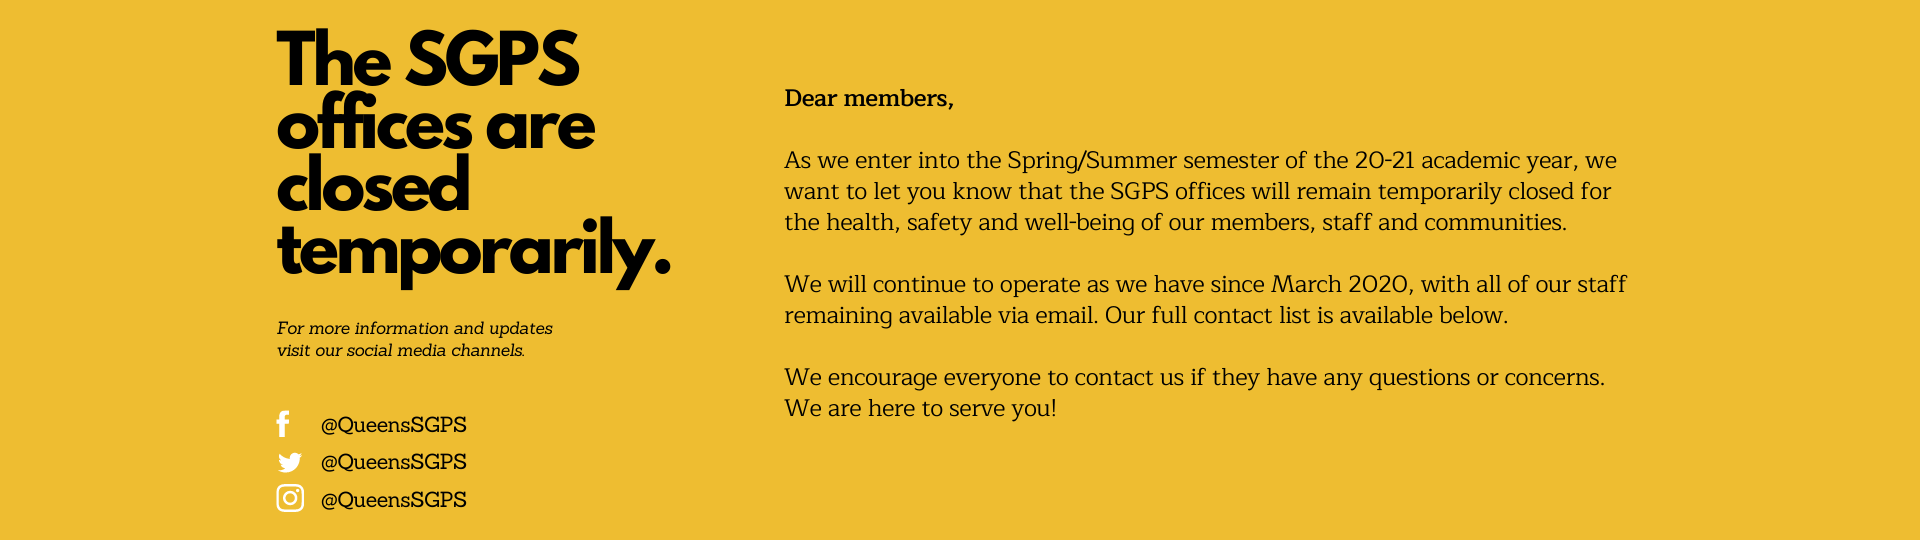 Graphic explaining that the SGPS offices are closed temporarily due to the ongoing pandemic. Staff remain available via email. Please see the contact list below to reach out to us.